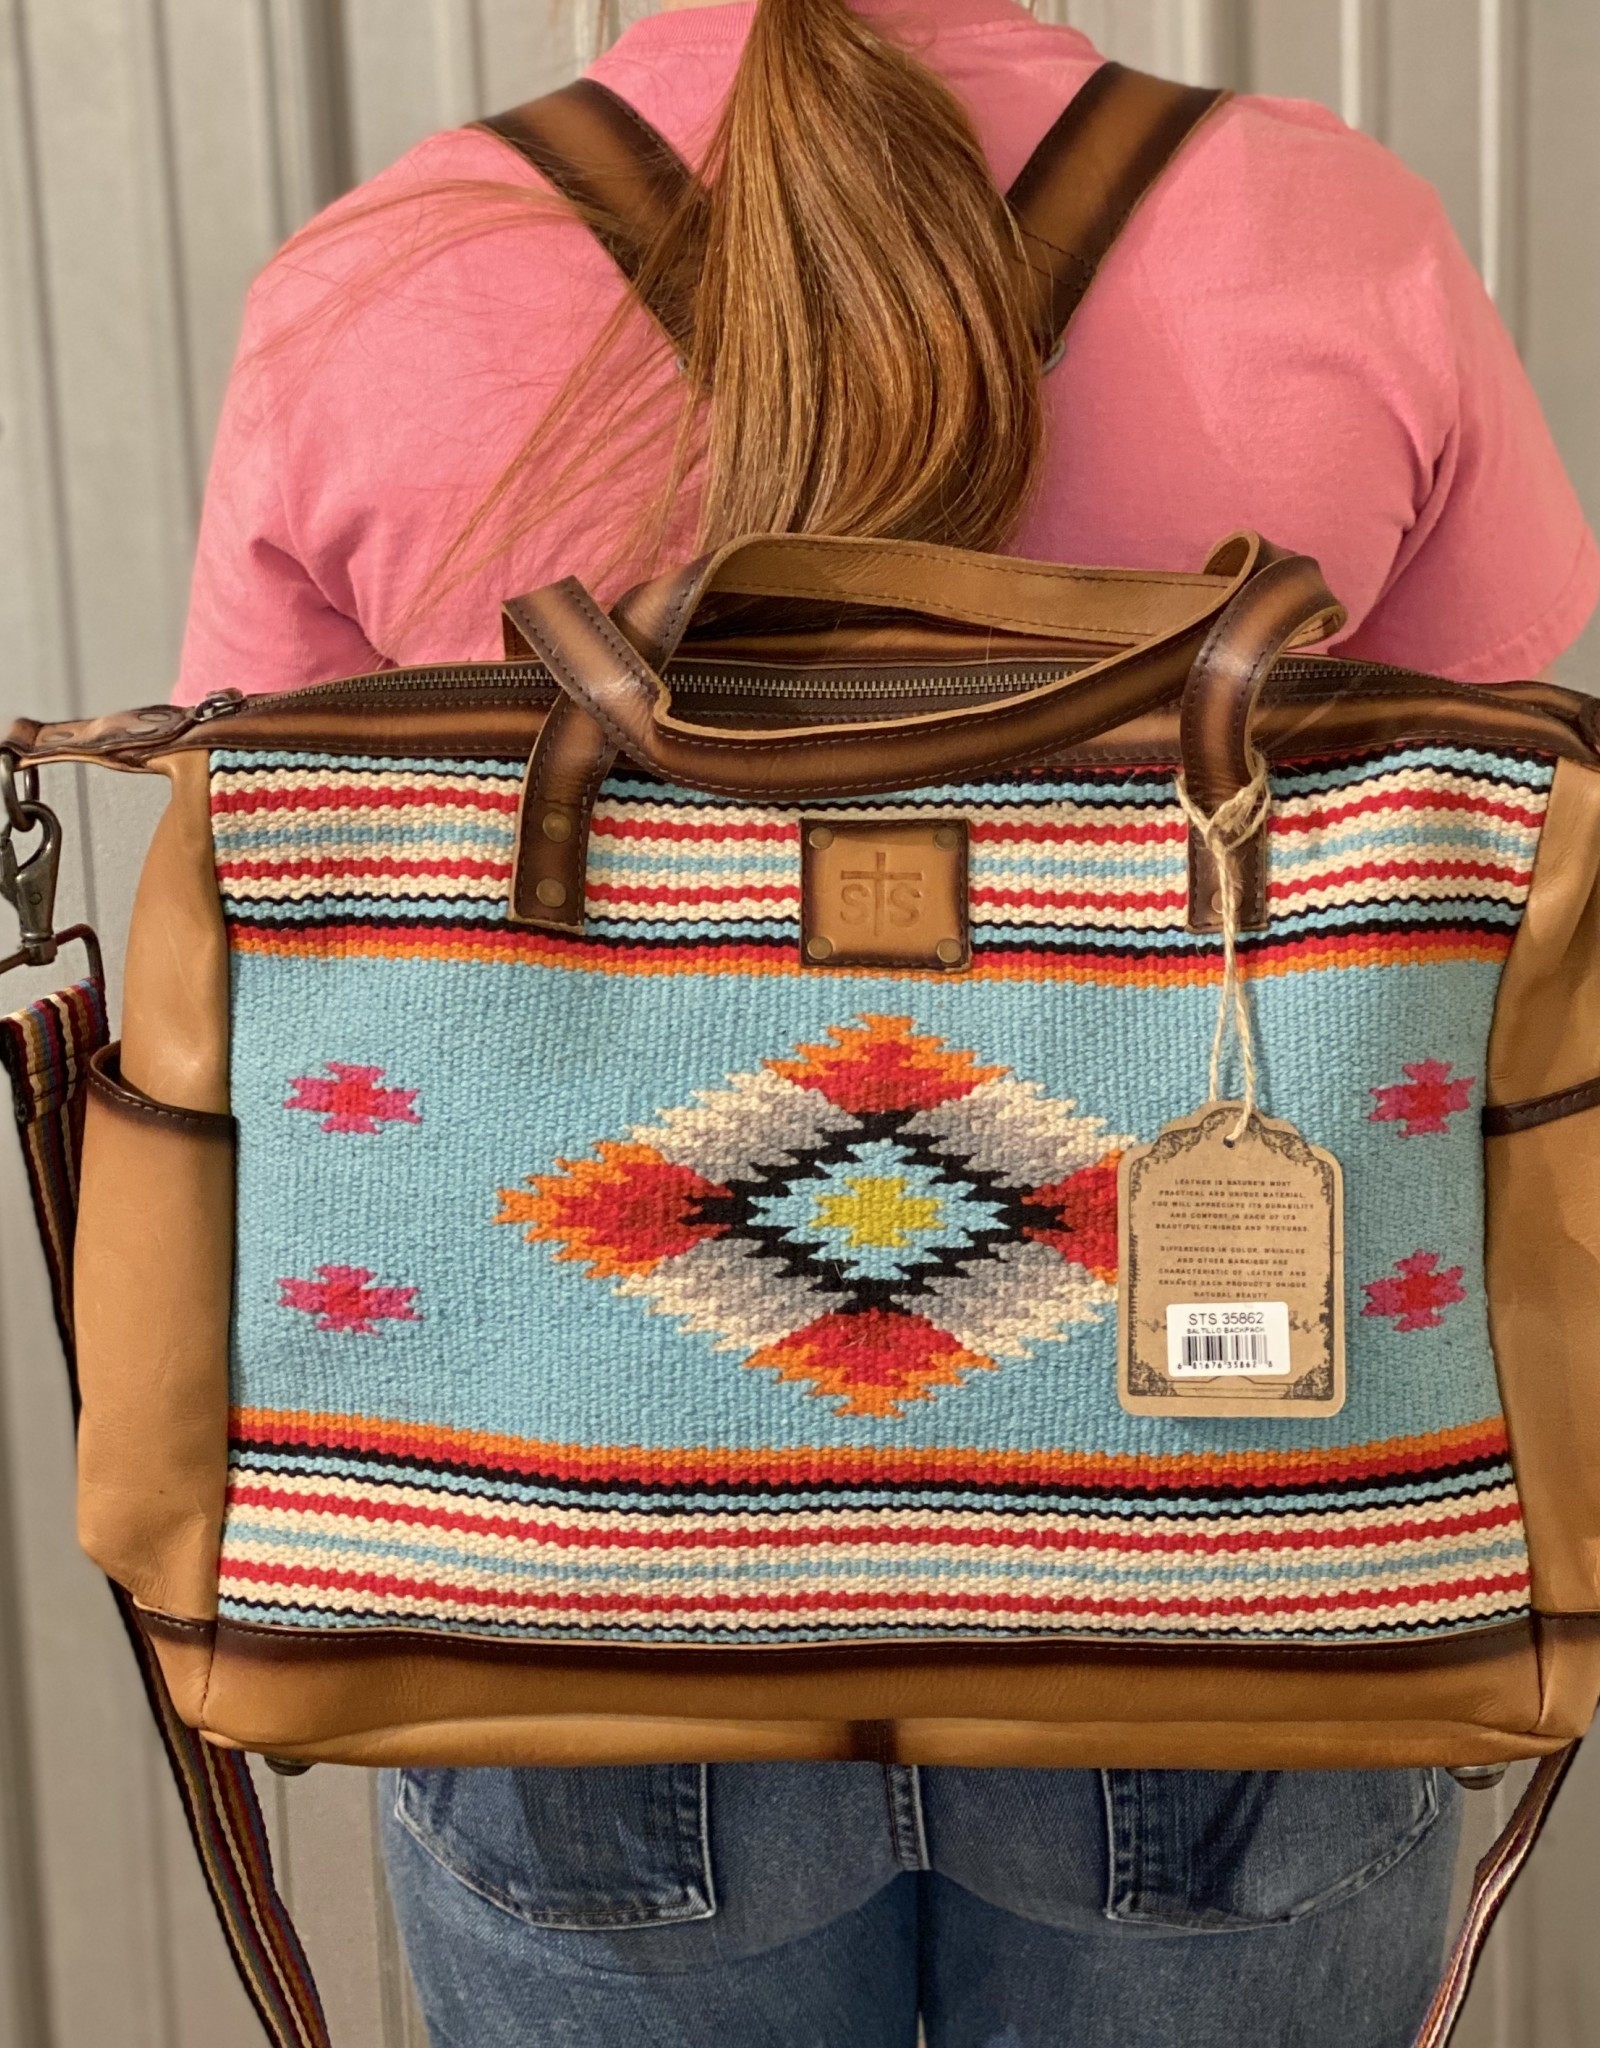 STS TOTE PURSE SALTILLO BLANKET BACKPACK CC